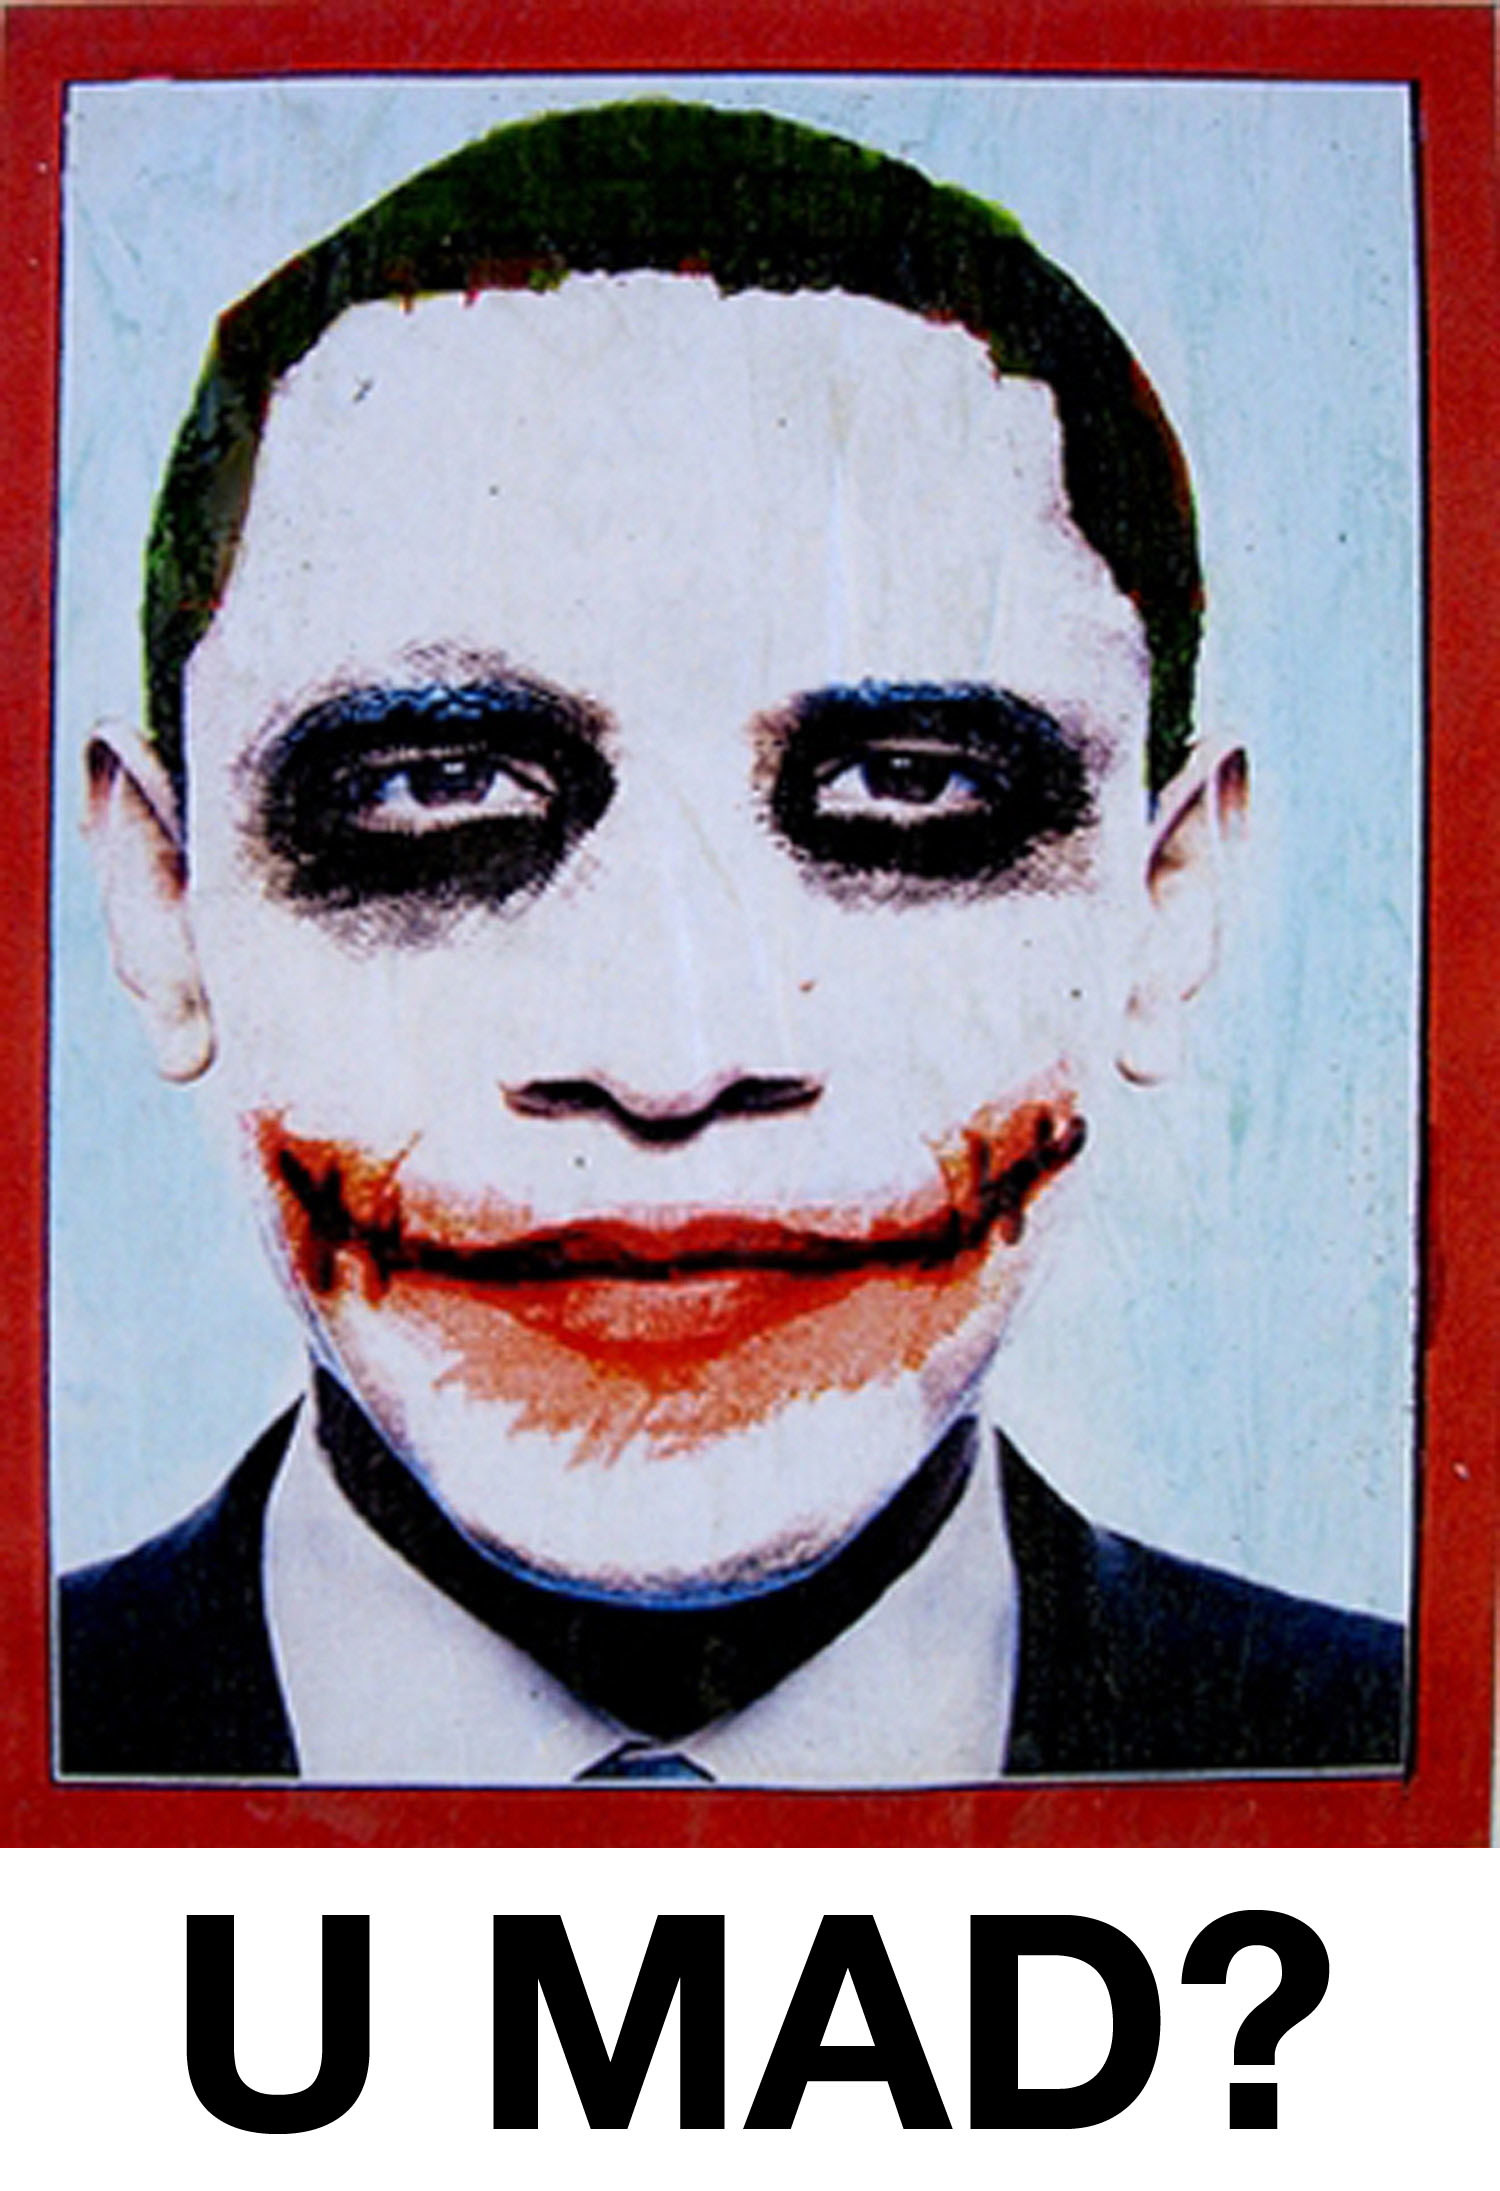 The joker barack obama HD Wallpaper